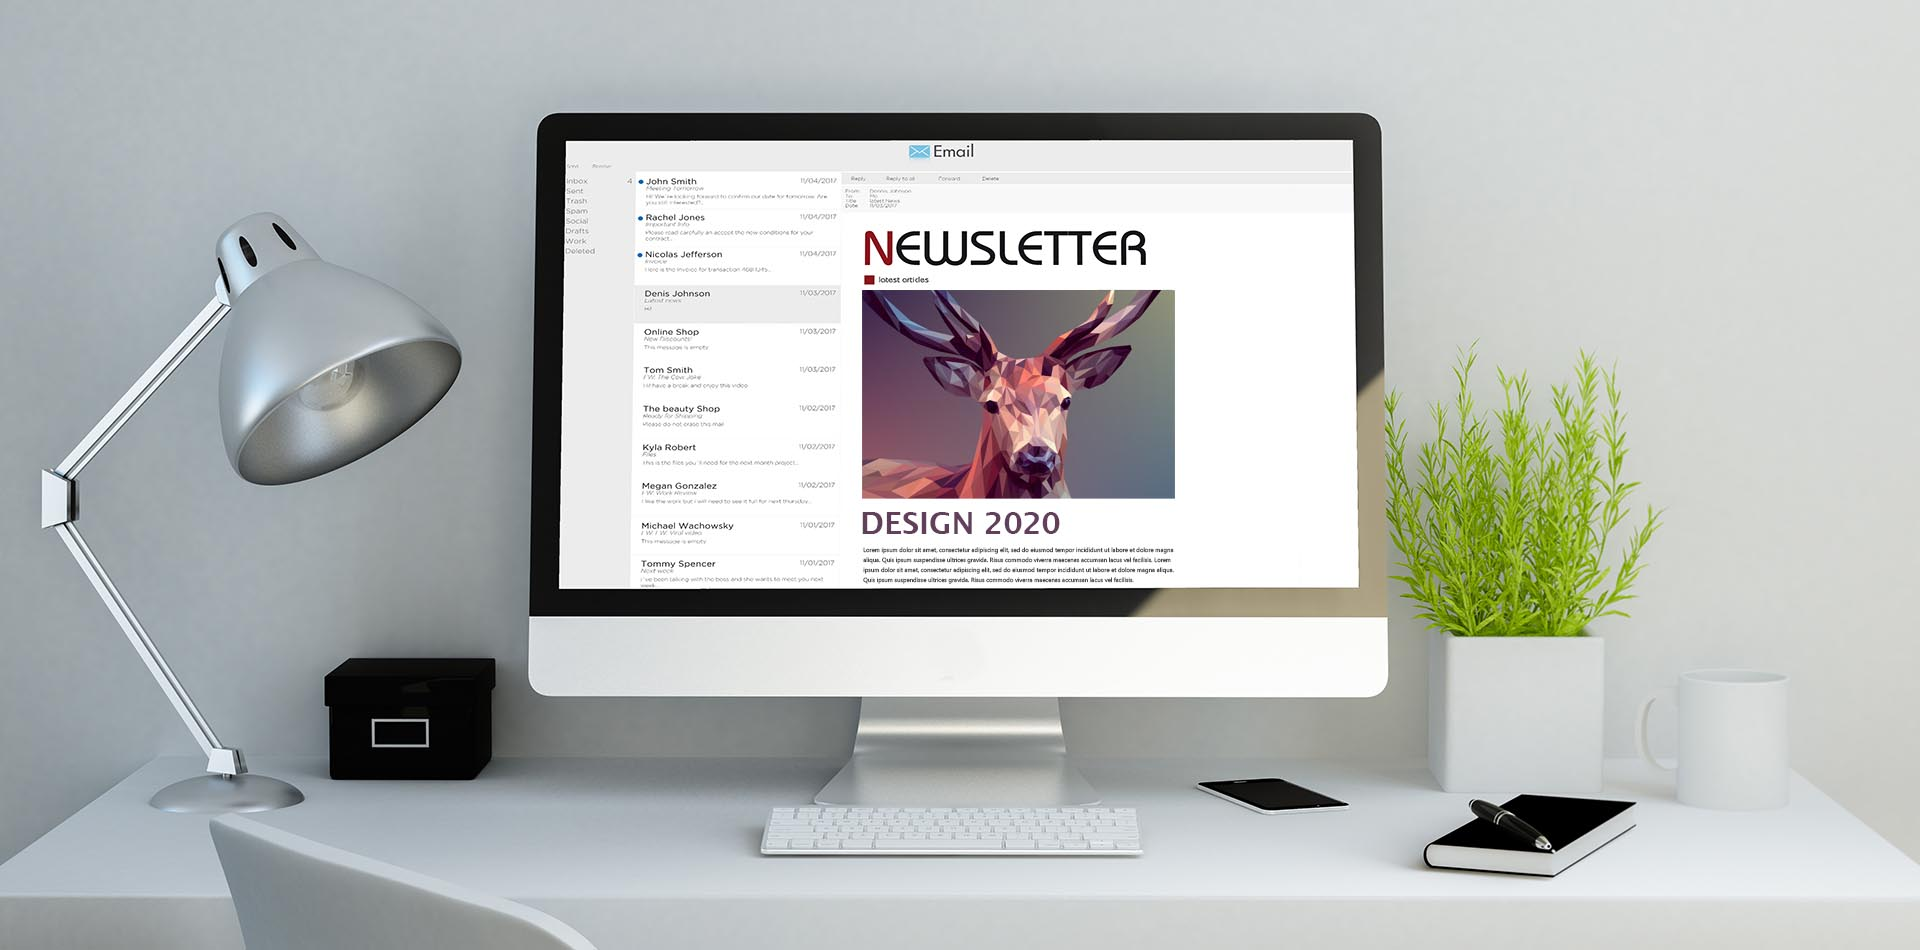 Newsletter Design 2020 - die Trends